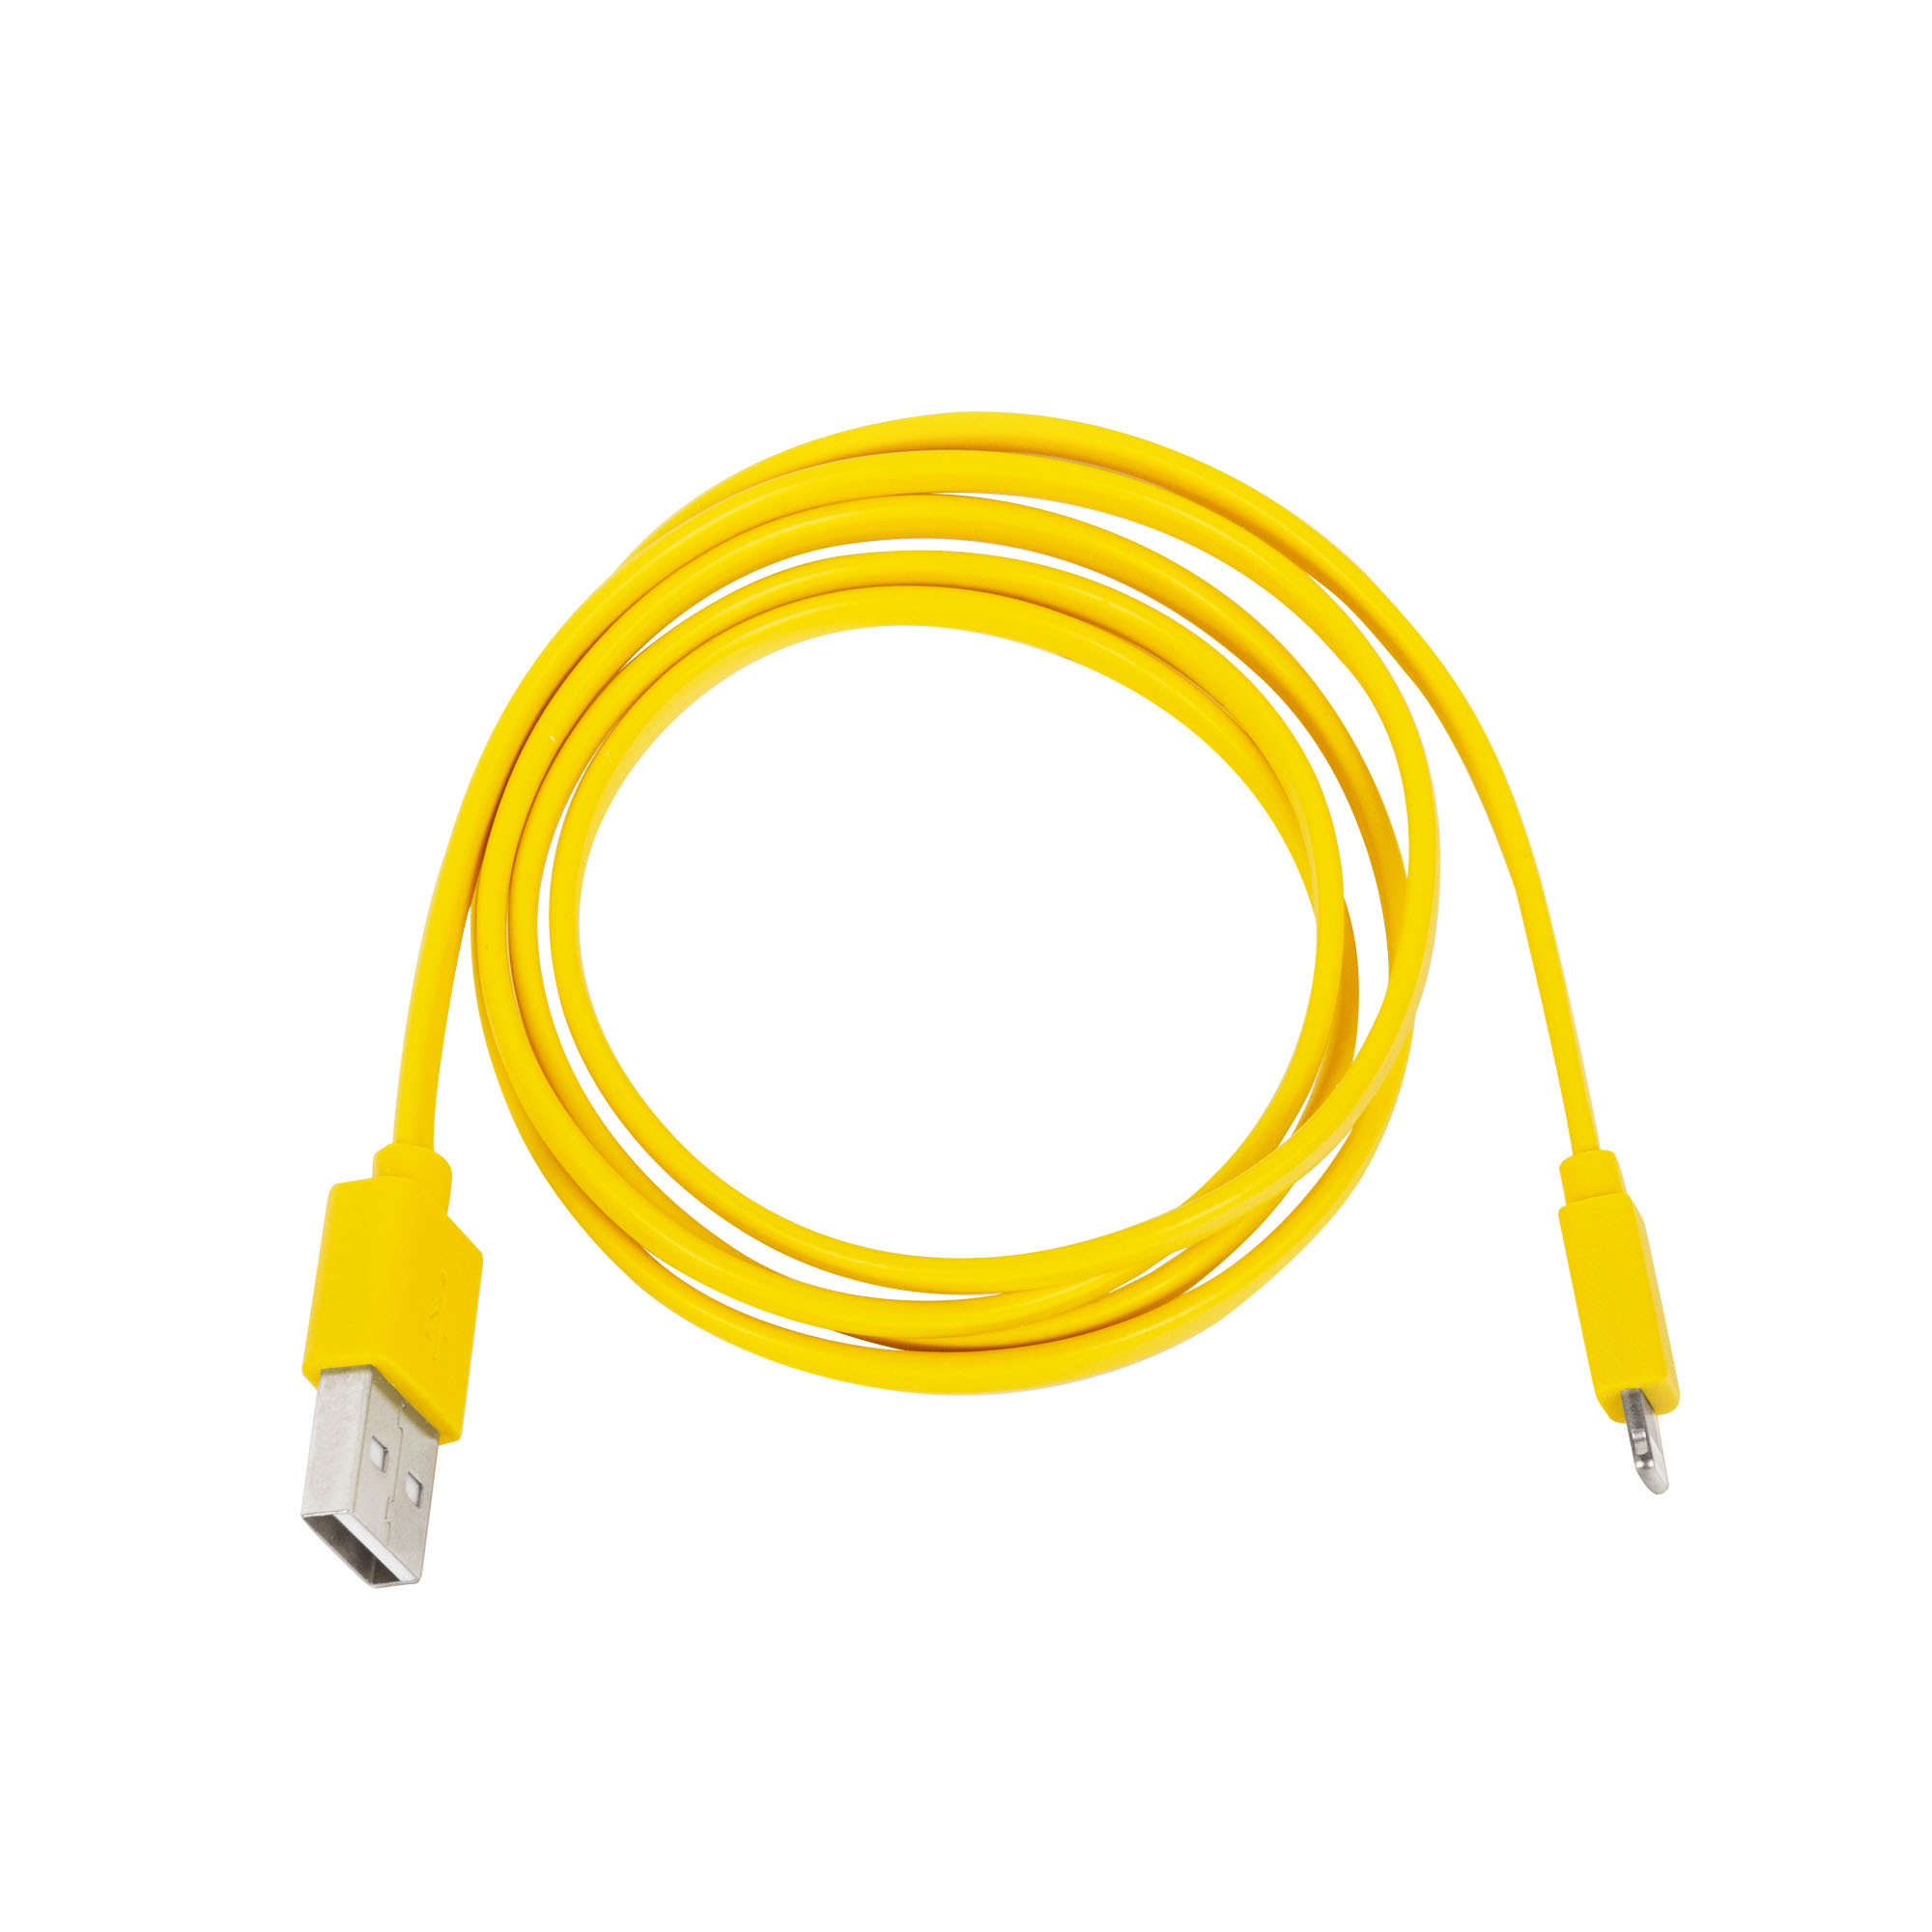 Rombica Digital MR-01 Yellow